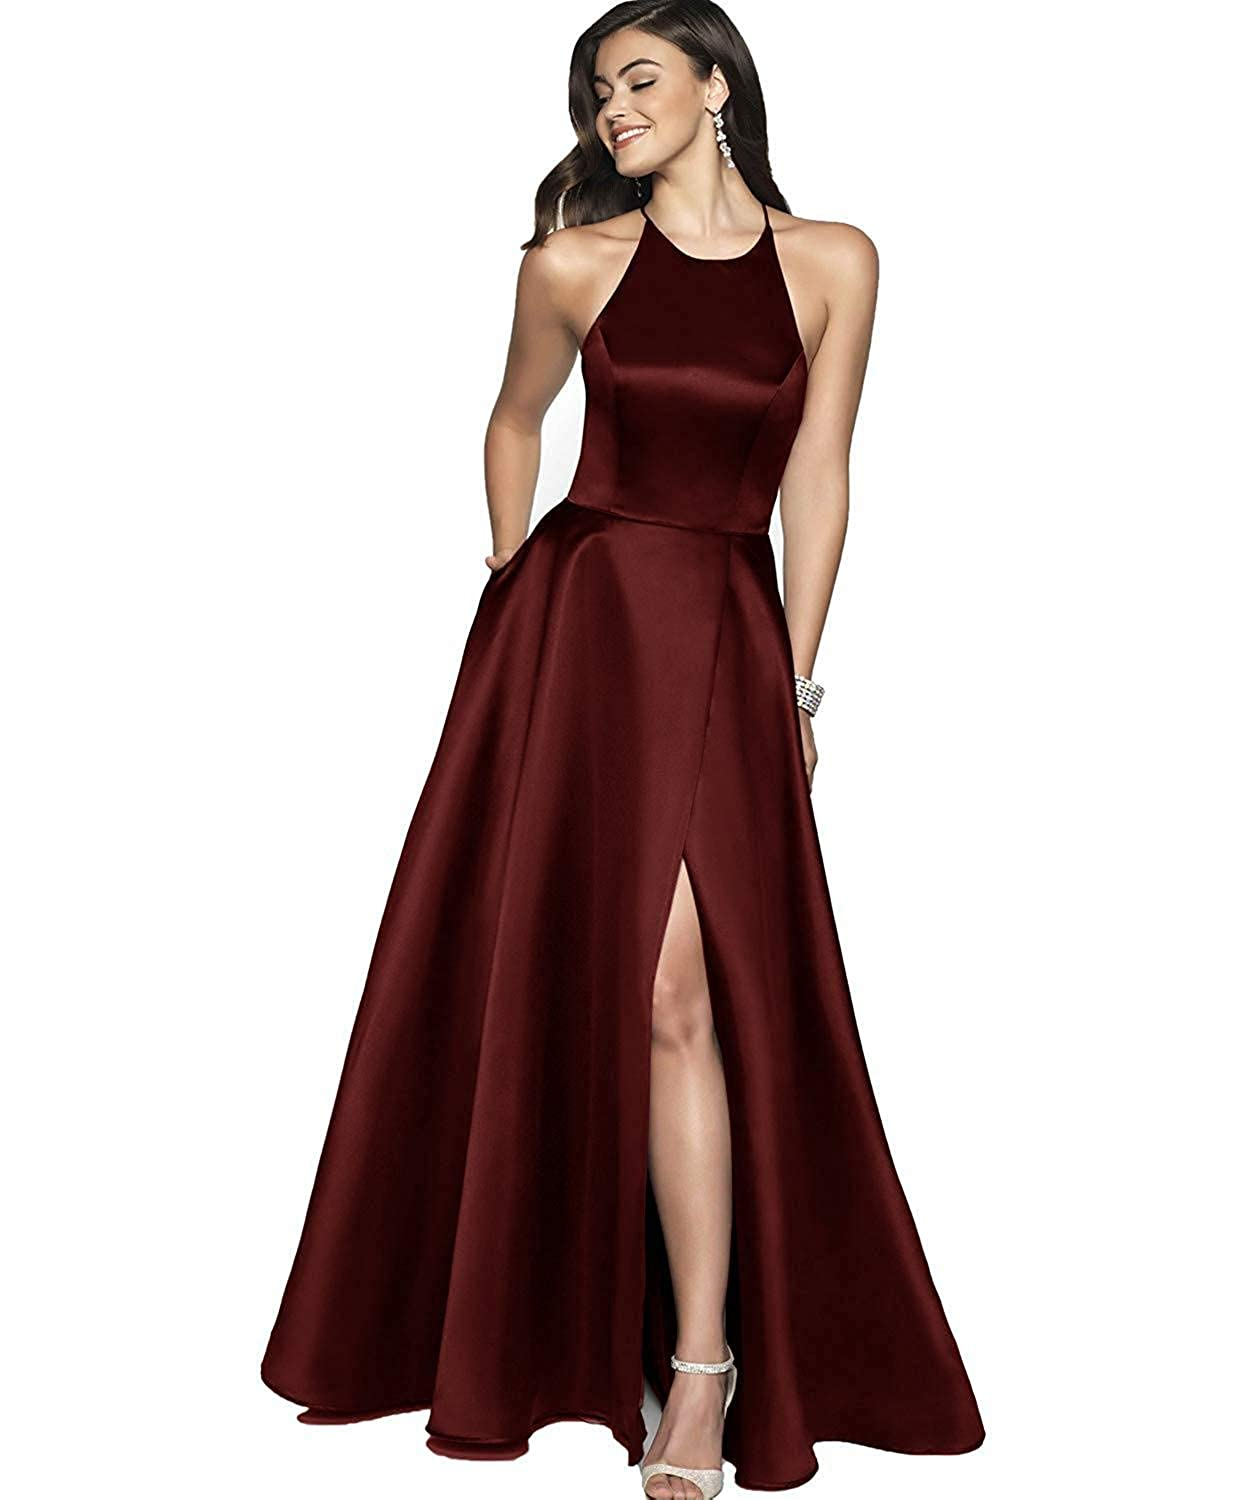 Burgundy NewFex Halter Prom Gowns with Pockets Satin Aline 2019 Split Formal Evening Dresses